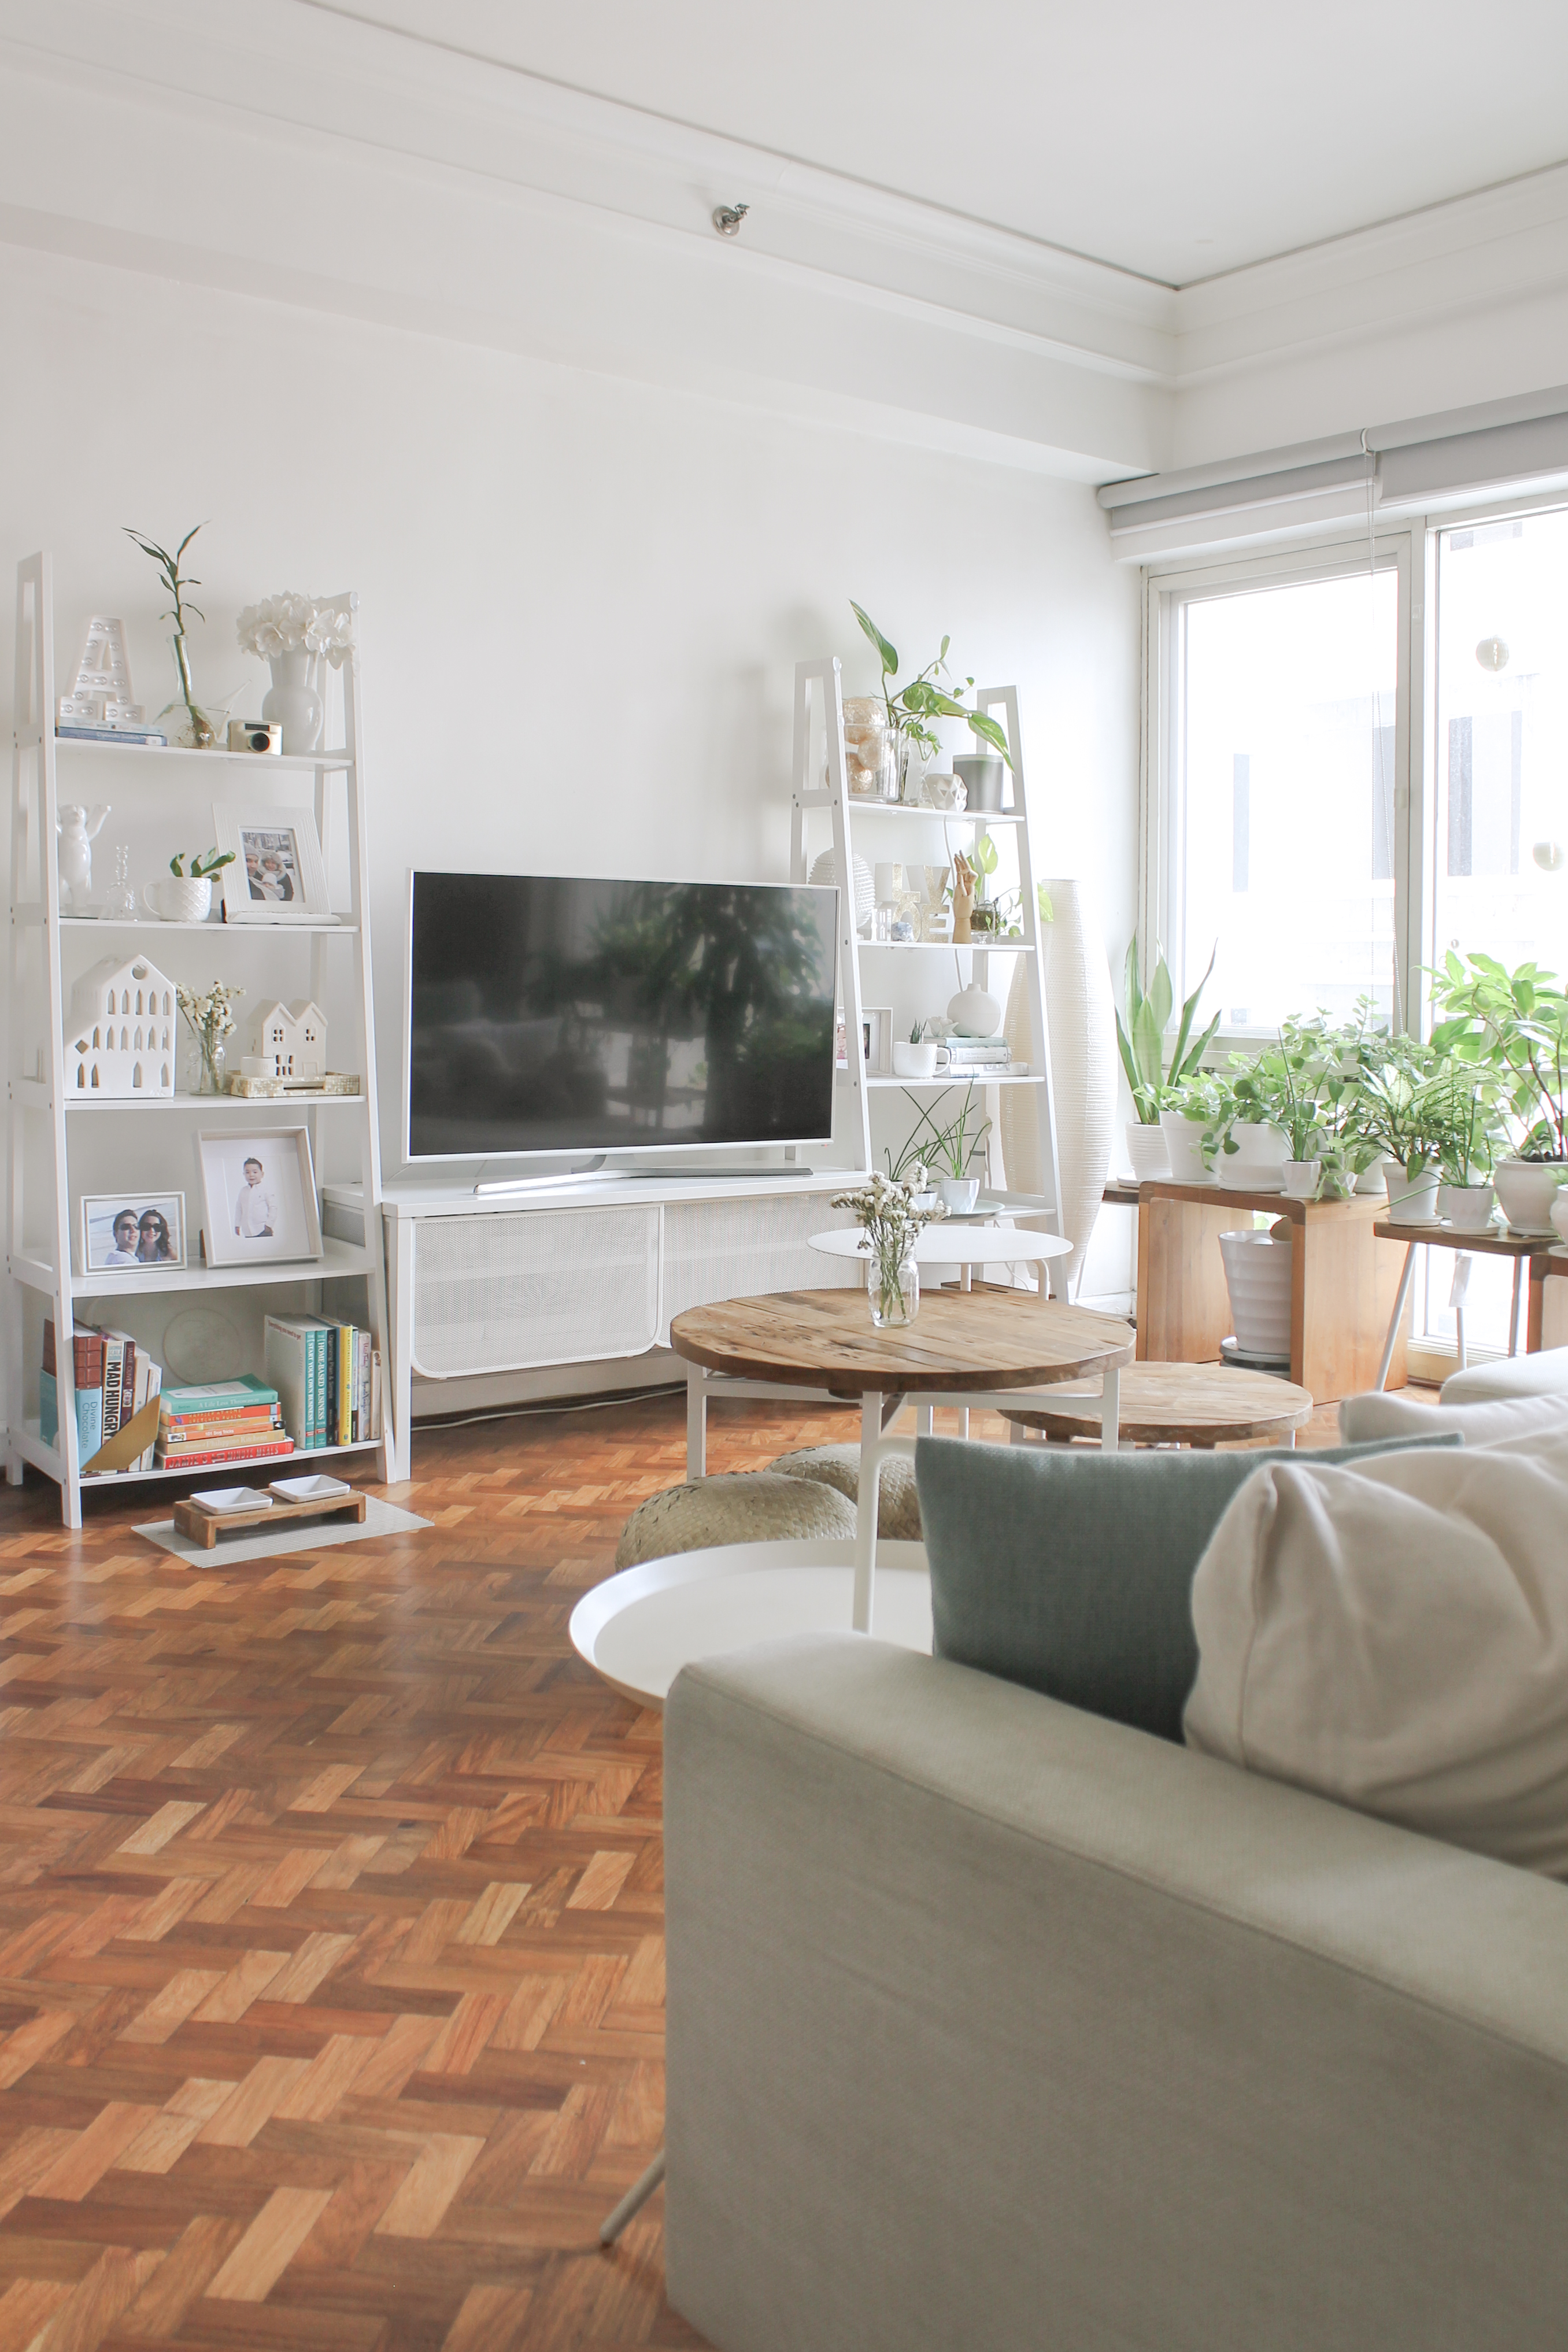 Scandinavian Design Home By A Filipino In Manila Ideas To Learn For Simple Living Chuzai Living